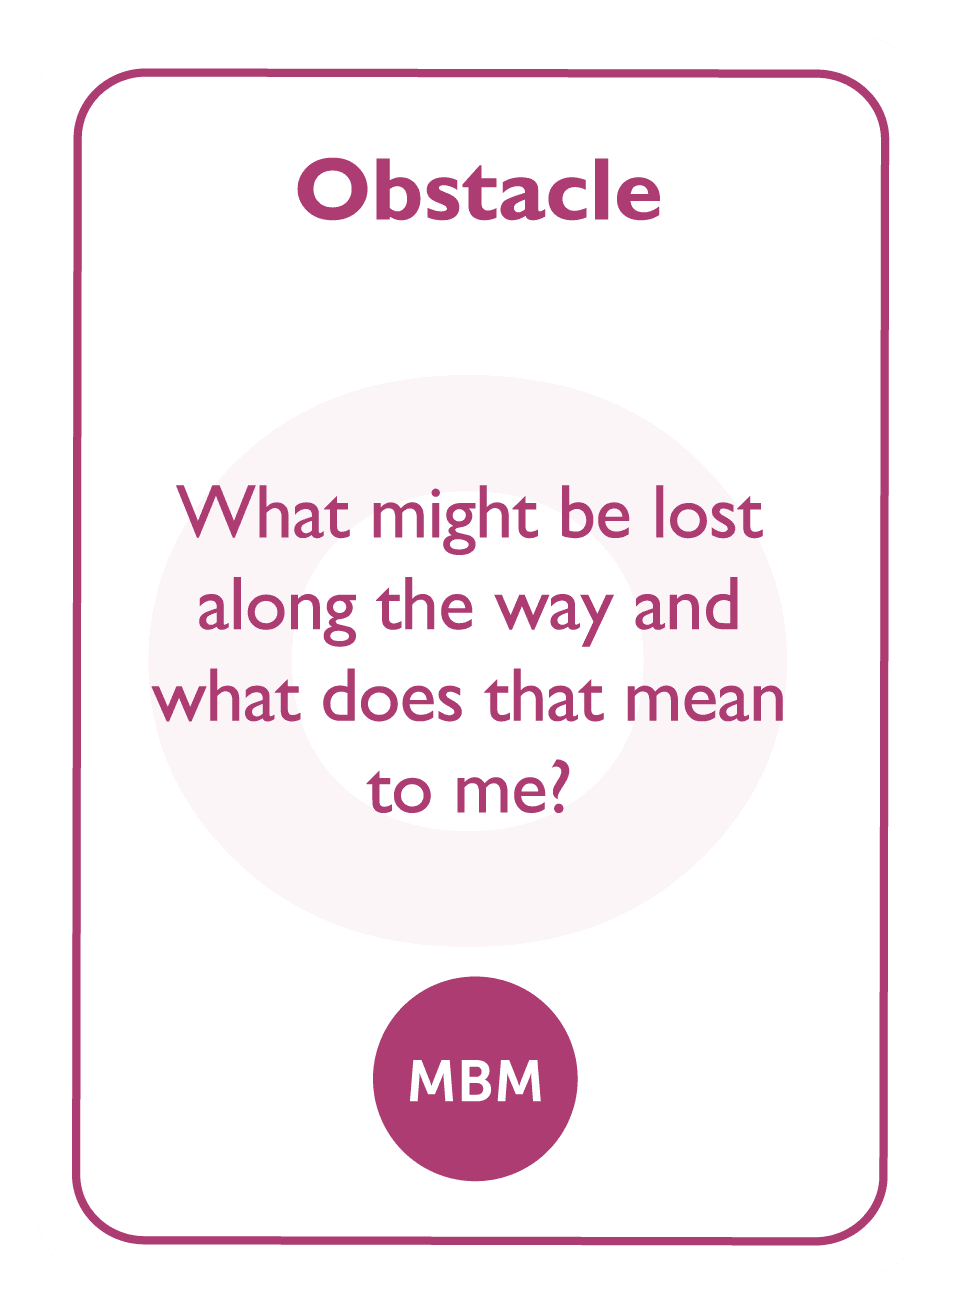 Coaching card titled Obstacle